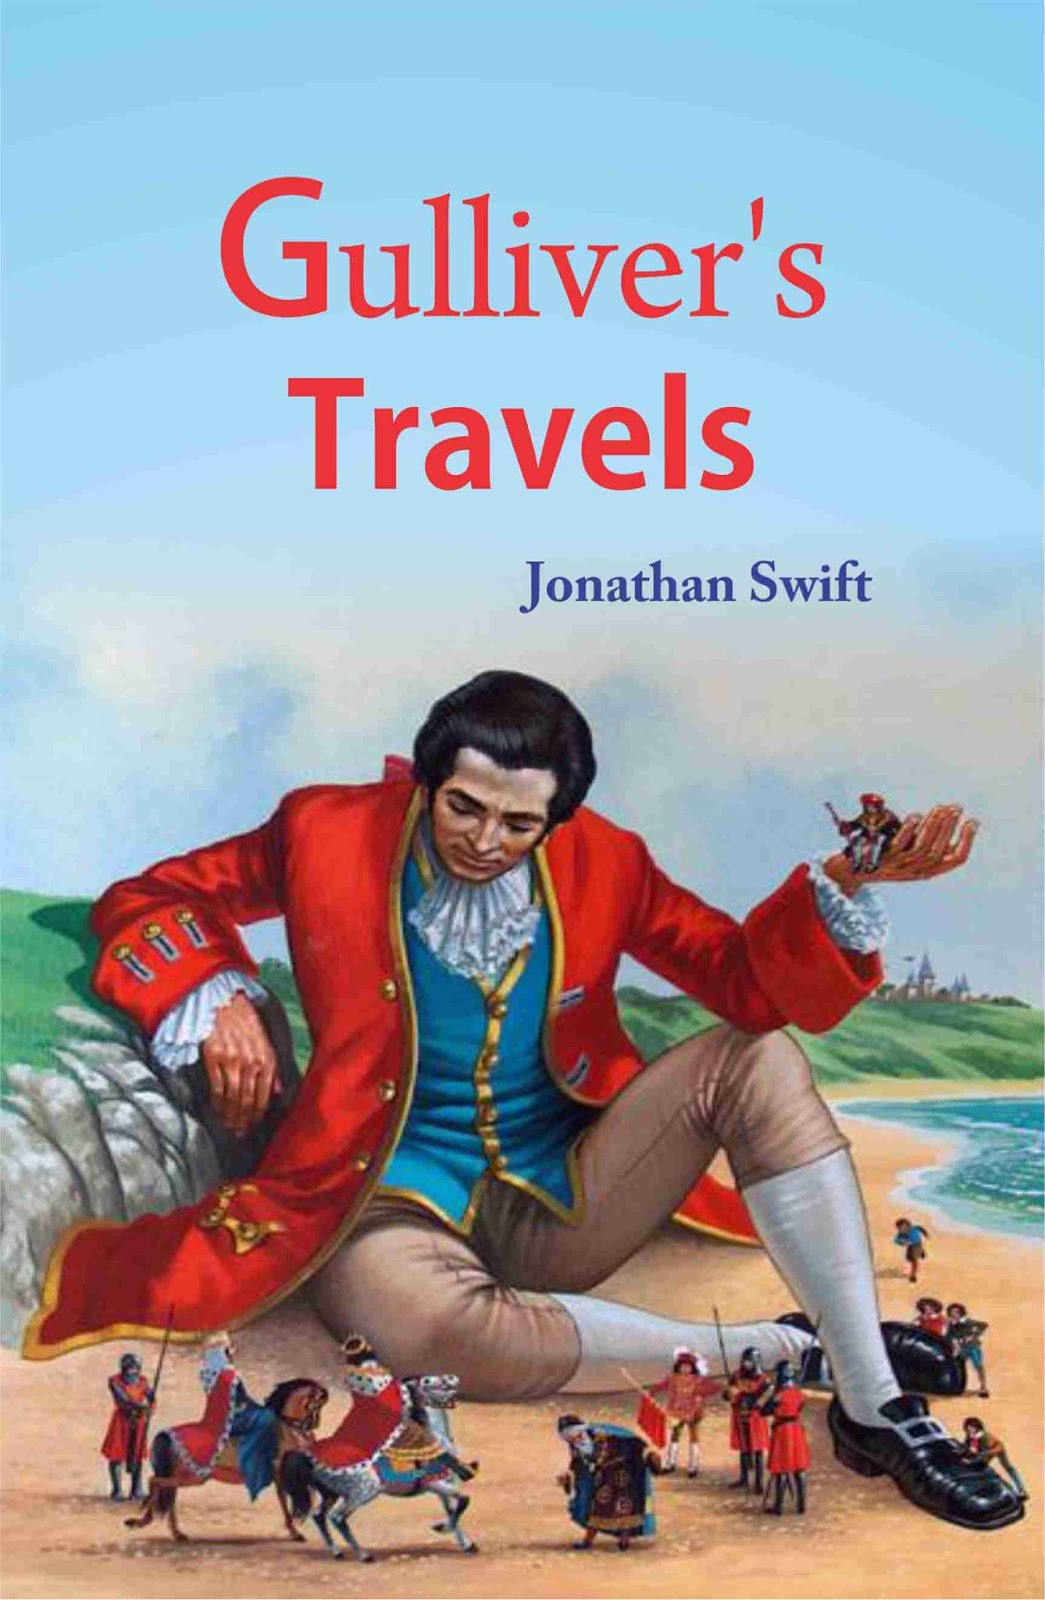 extraneous gullivers travels by jonathan swift Written by jonathan swift, gulliver's travels is the story of the adventures of lemuel gulliver, the narrator and protagonist of the story gulliver is a married surgeon from nottinghamshire.